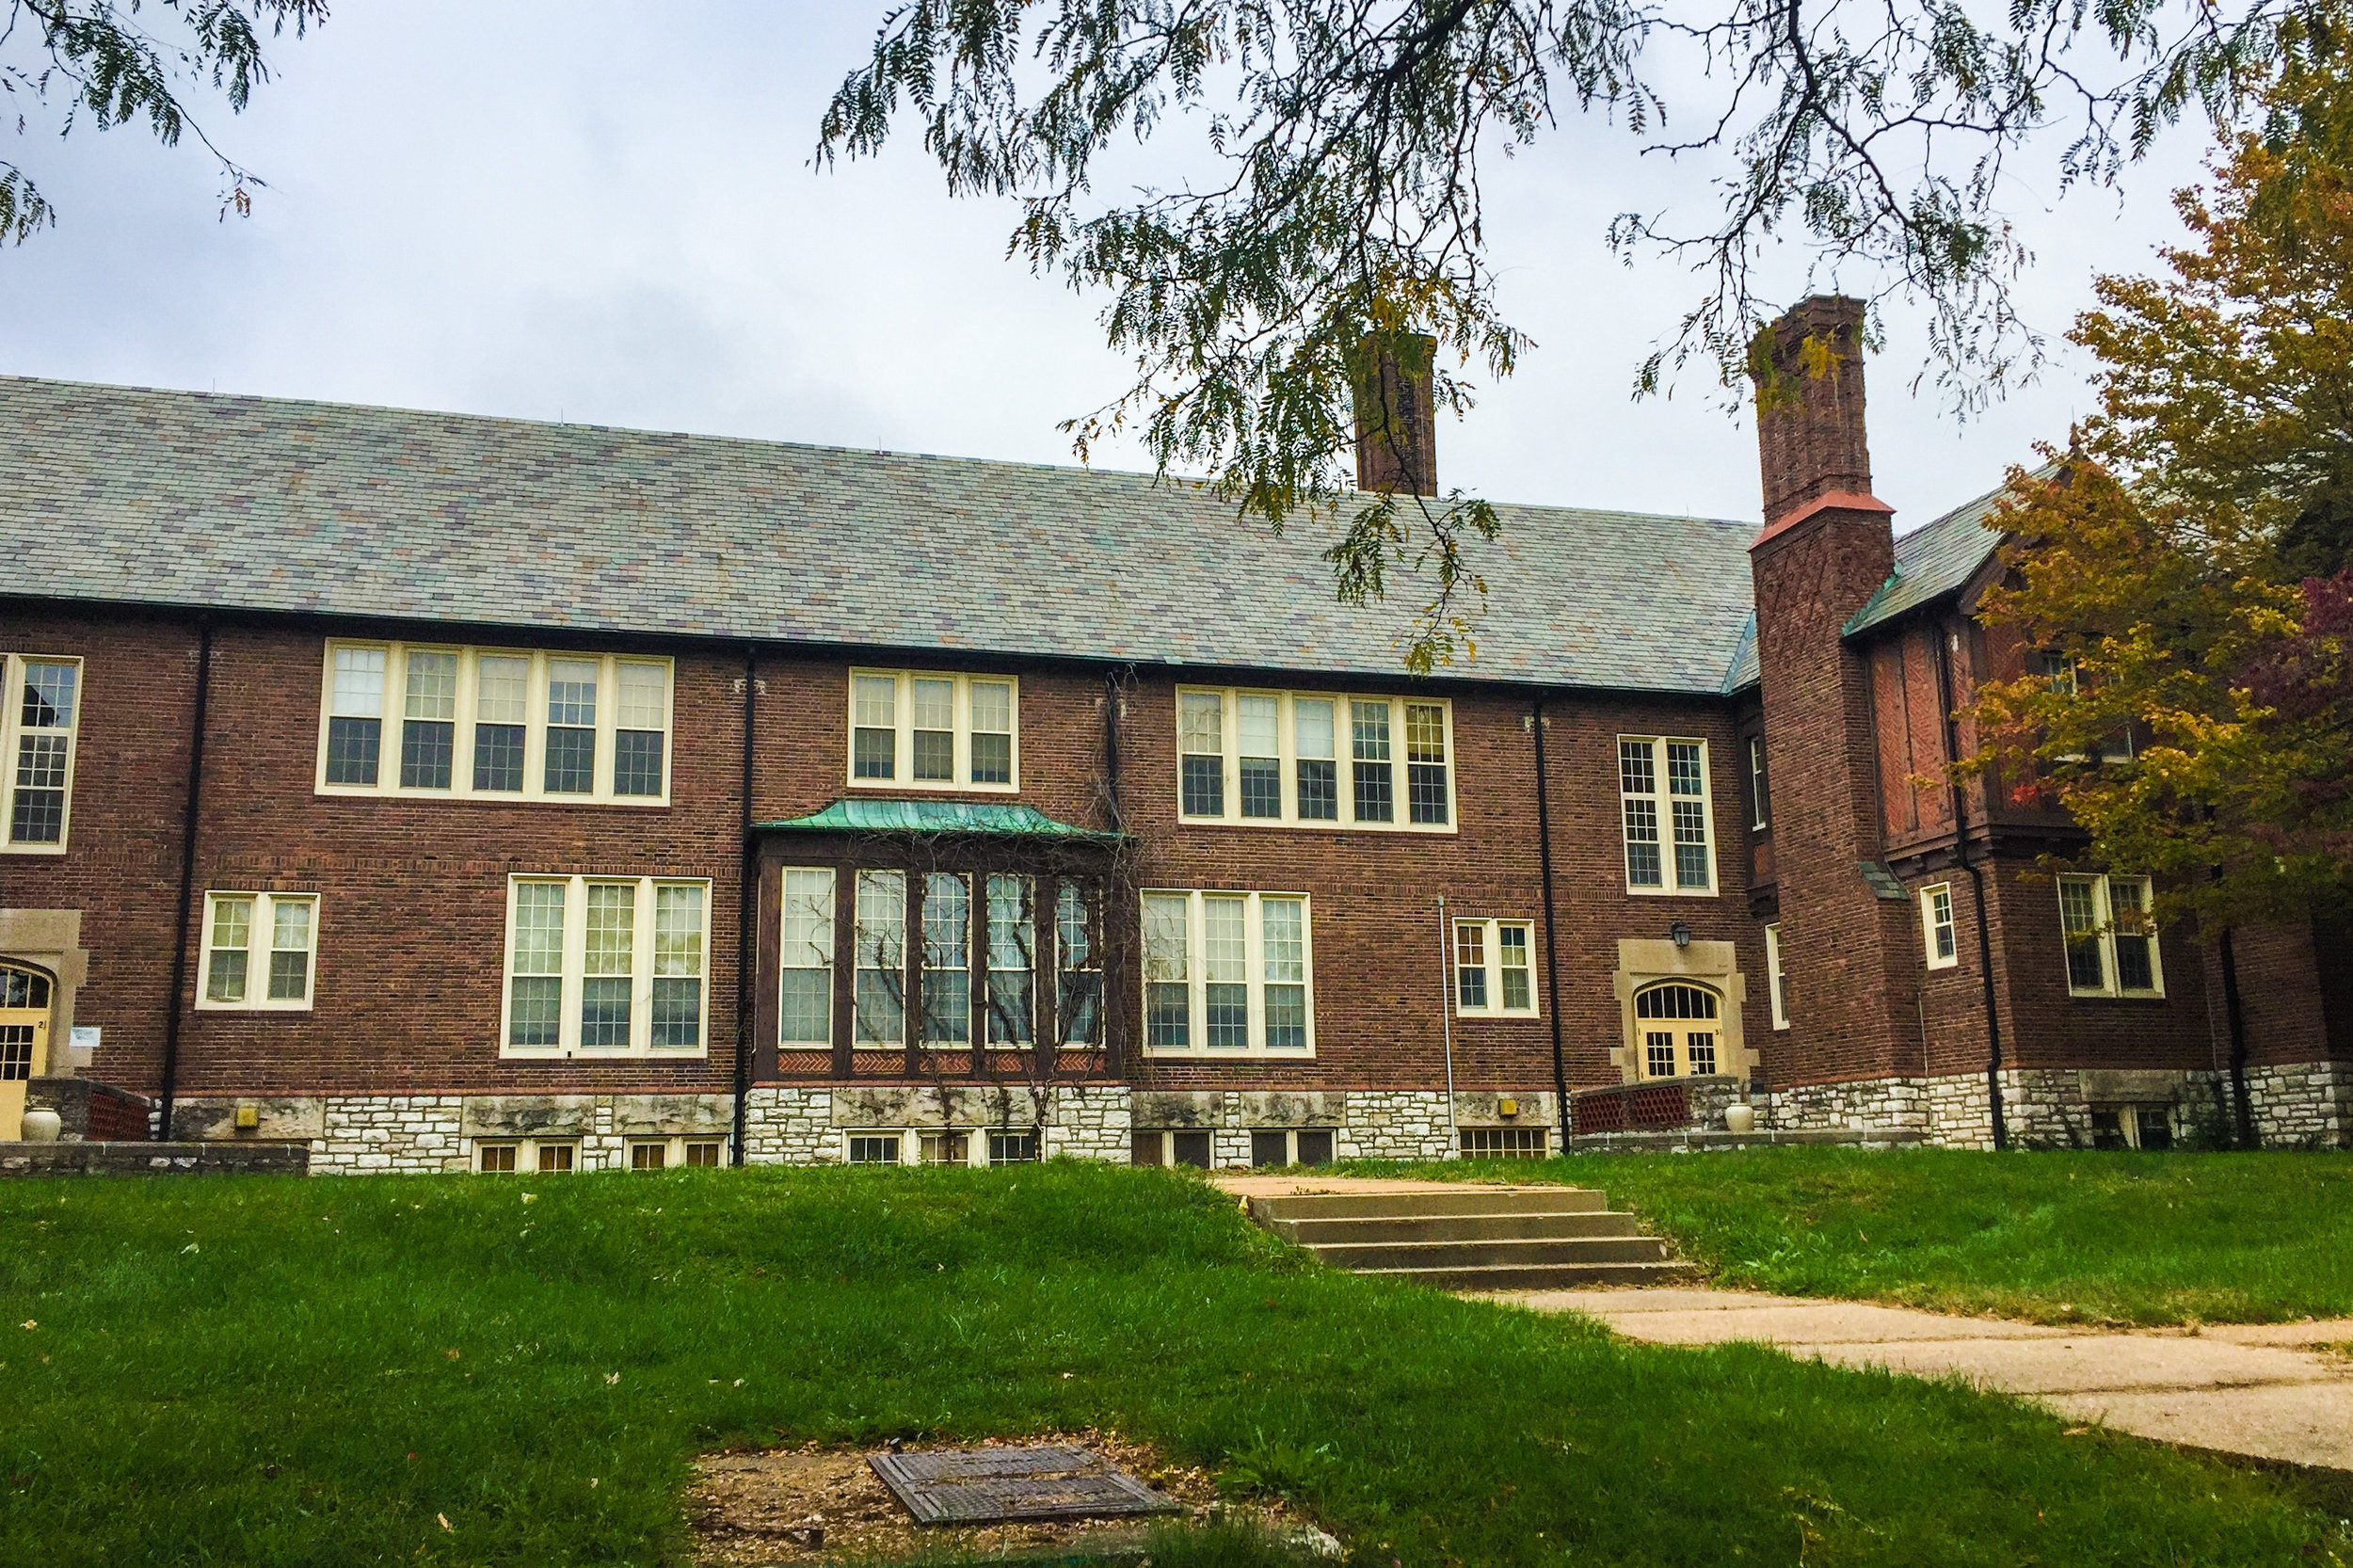 Hawthorne School - UNIVERSITY CITY, MISSOURIThe Hawthorne School Apartments is market rate community located in the University City suburb of St. Louis. The development is an adaptive reuse of the historic Nathaniel Hawthorne Elementary School.